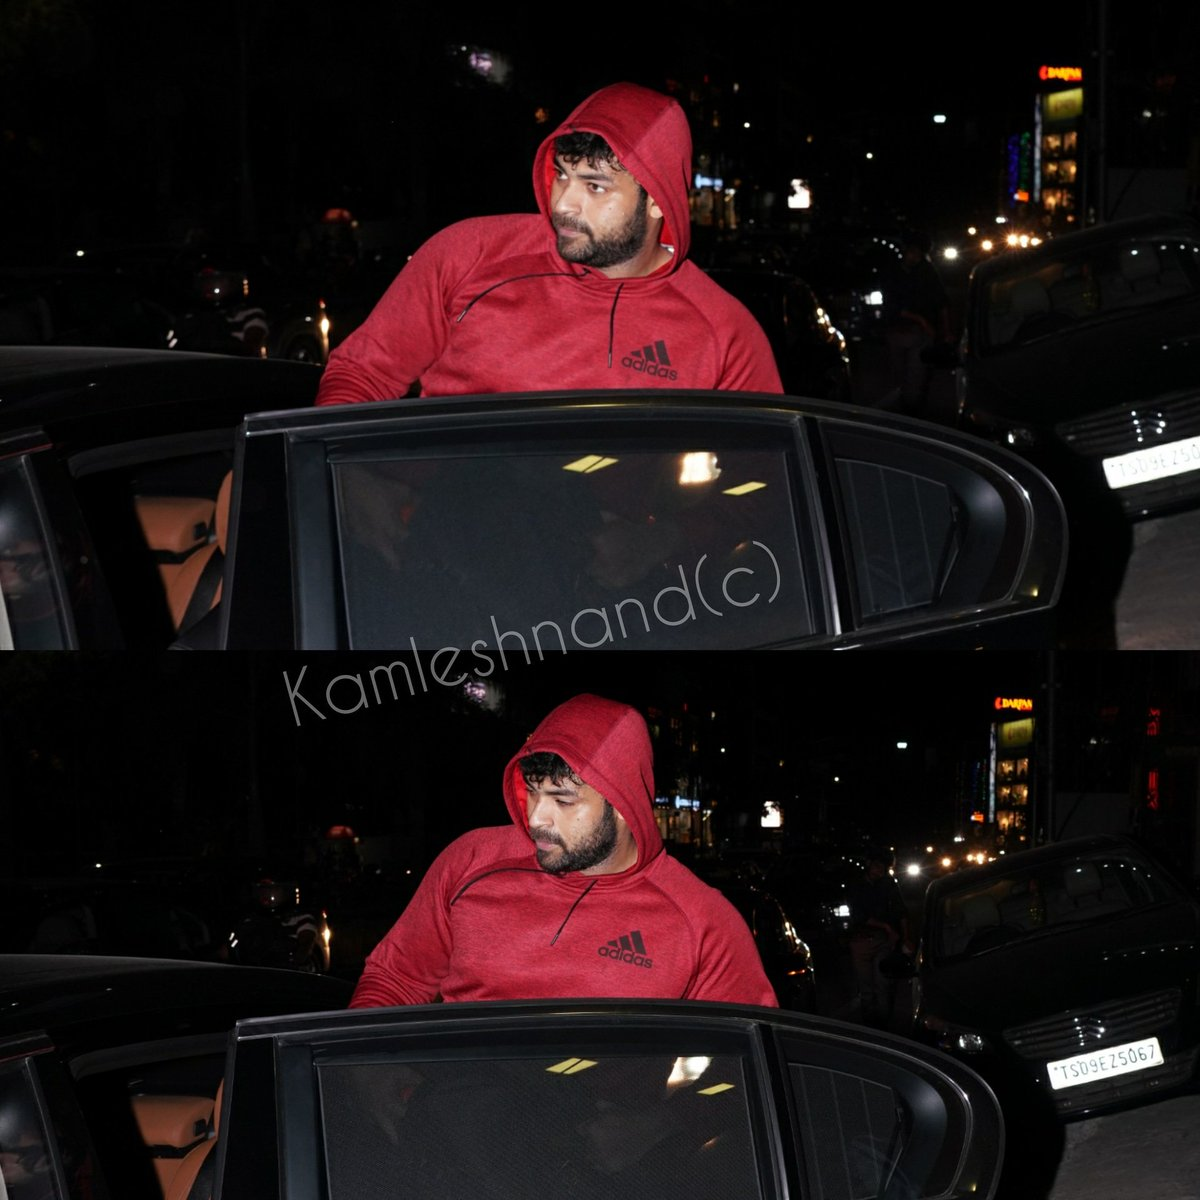 Hitting hard for #boxer #varuntej papped in the city post gym session @kamlesh_nand @IAmVarunTej #gymlife #southcelebs #tollywoodpic.twitter.com/zsYcYQ6Yfs